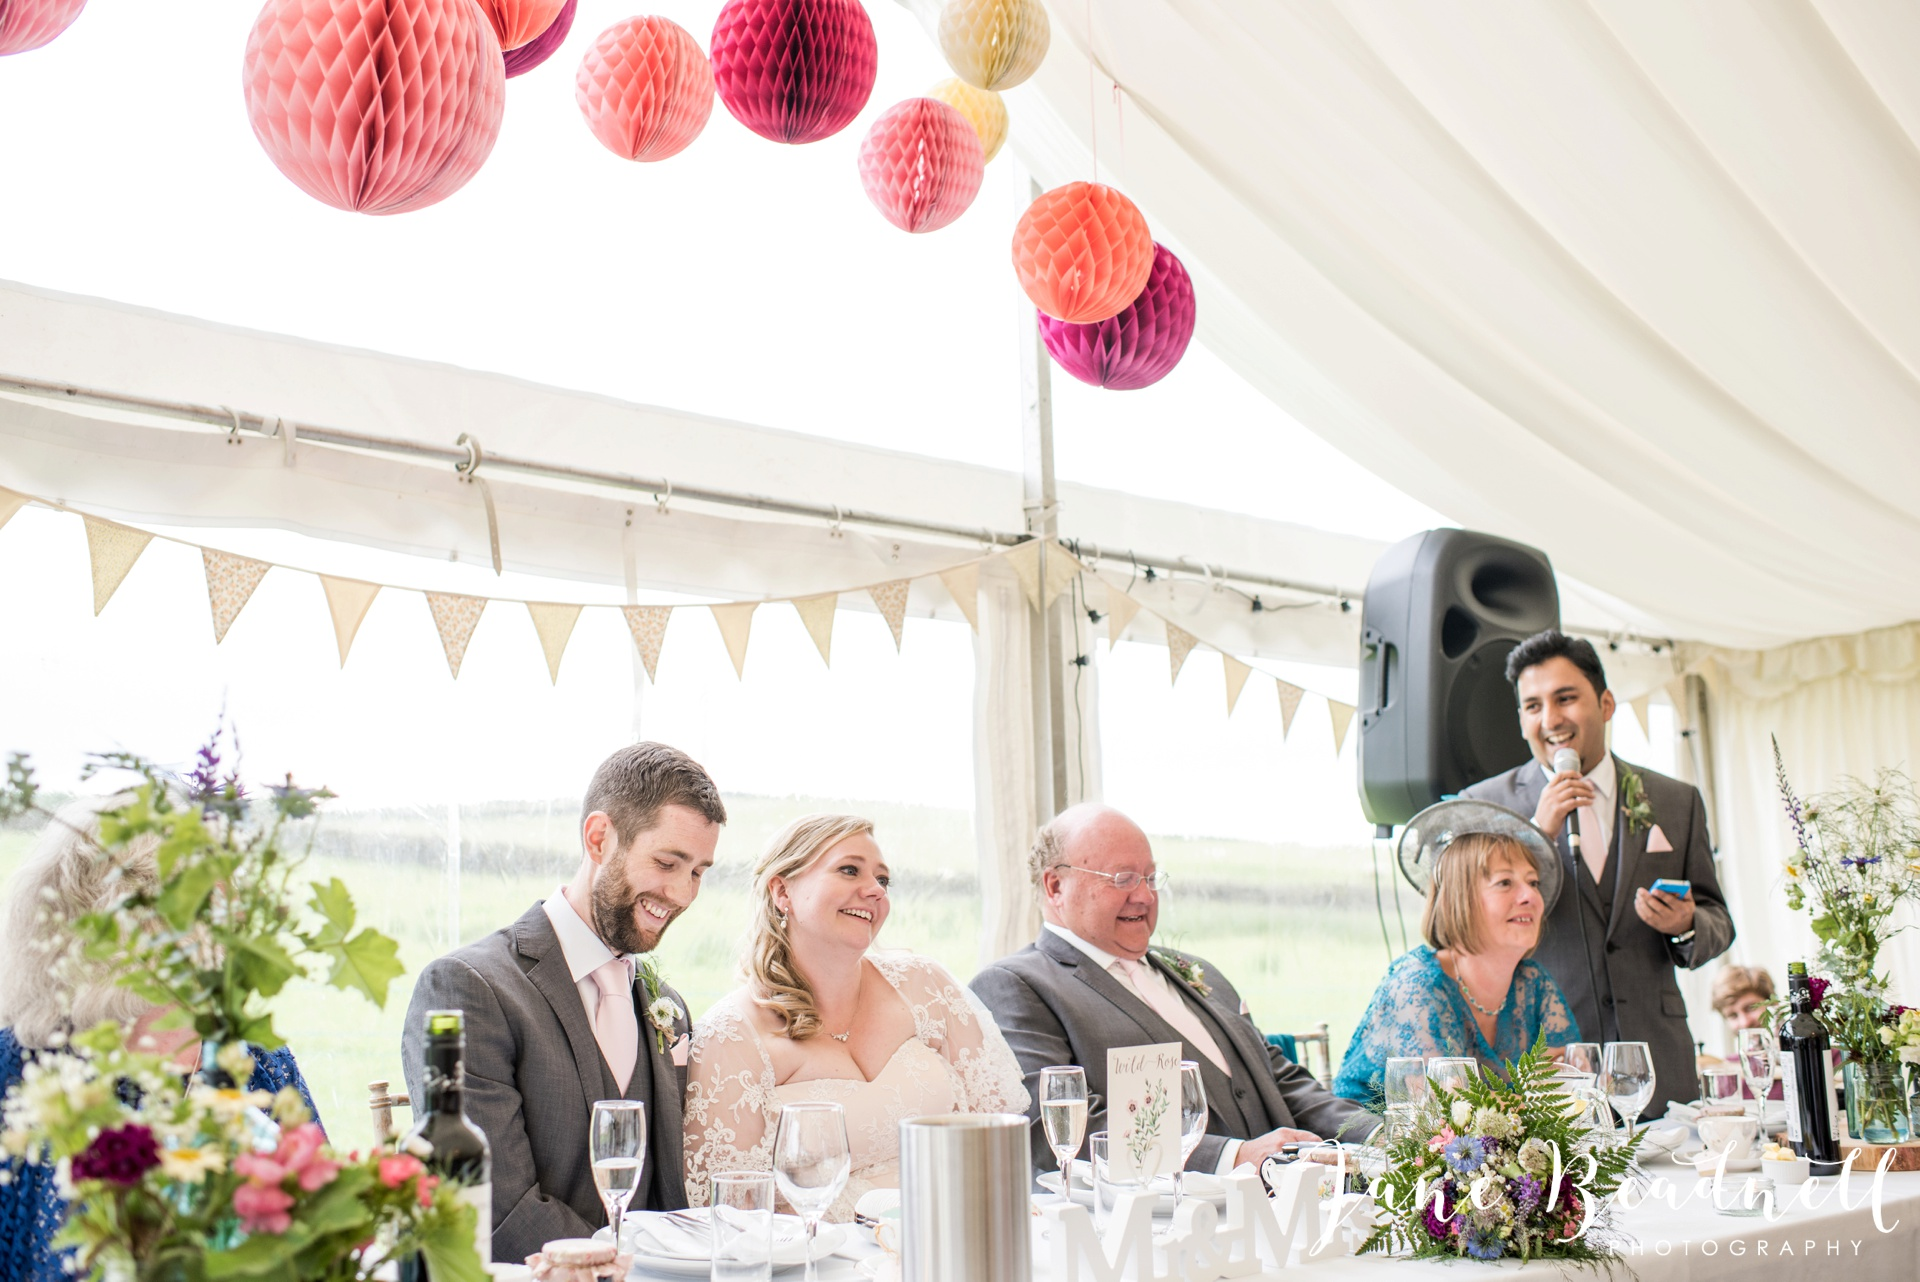 Yorkshire Wedding Photography the cheerful Chilli Barn Wedding by Jane Beadnell Photography_0179